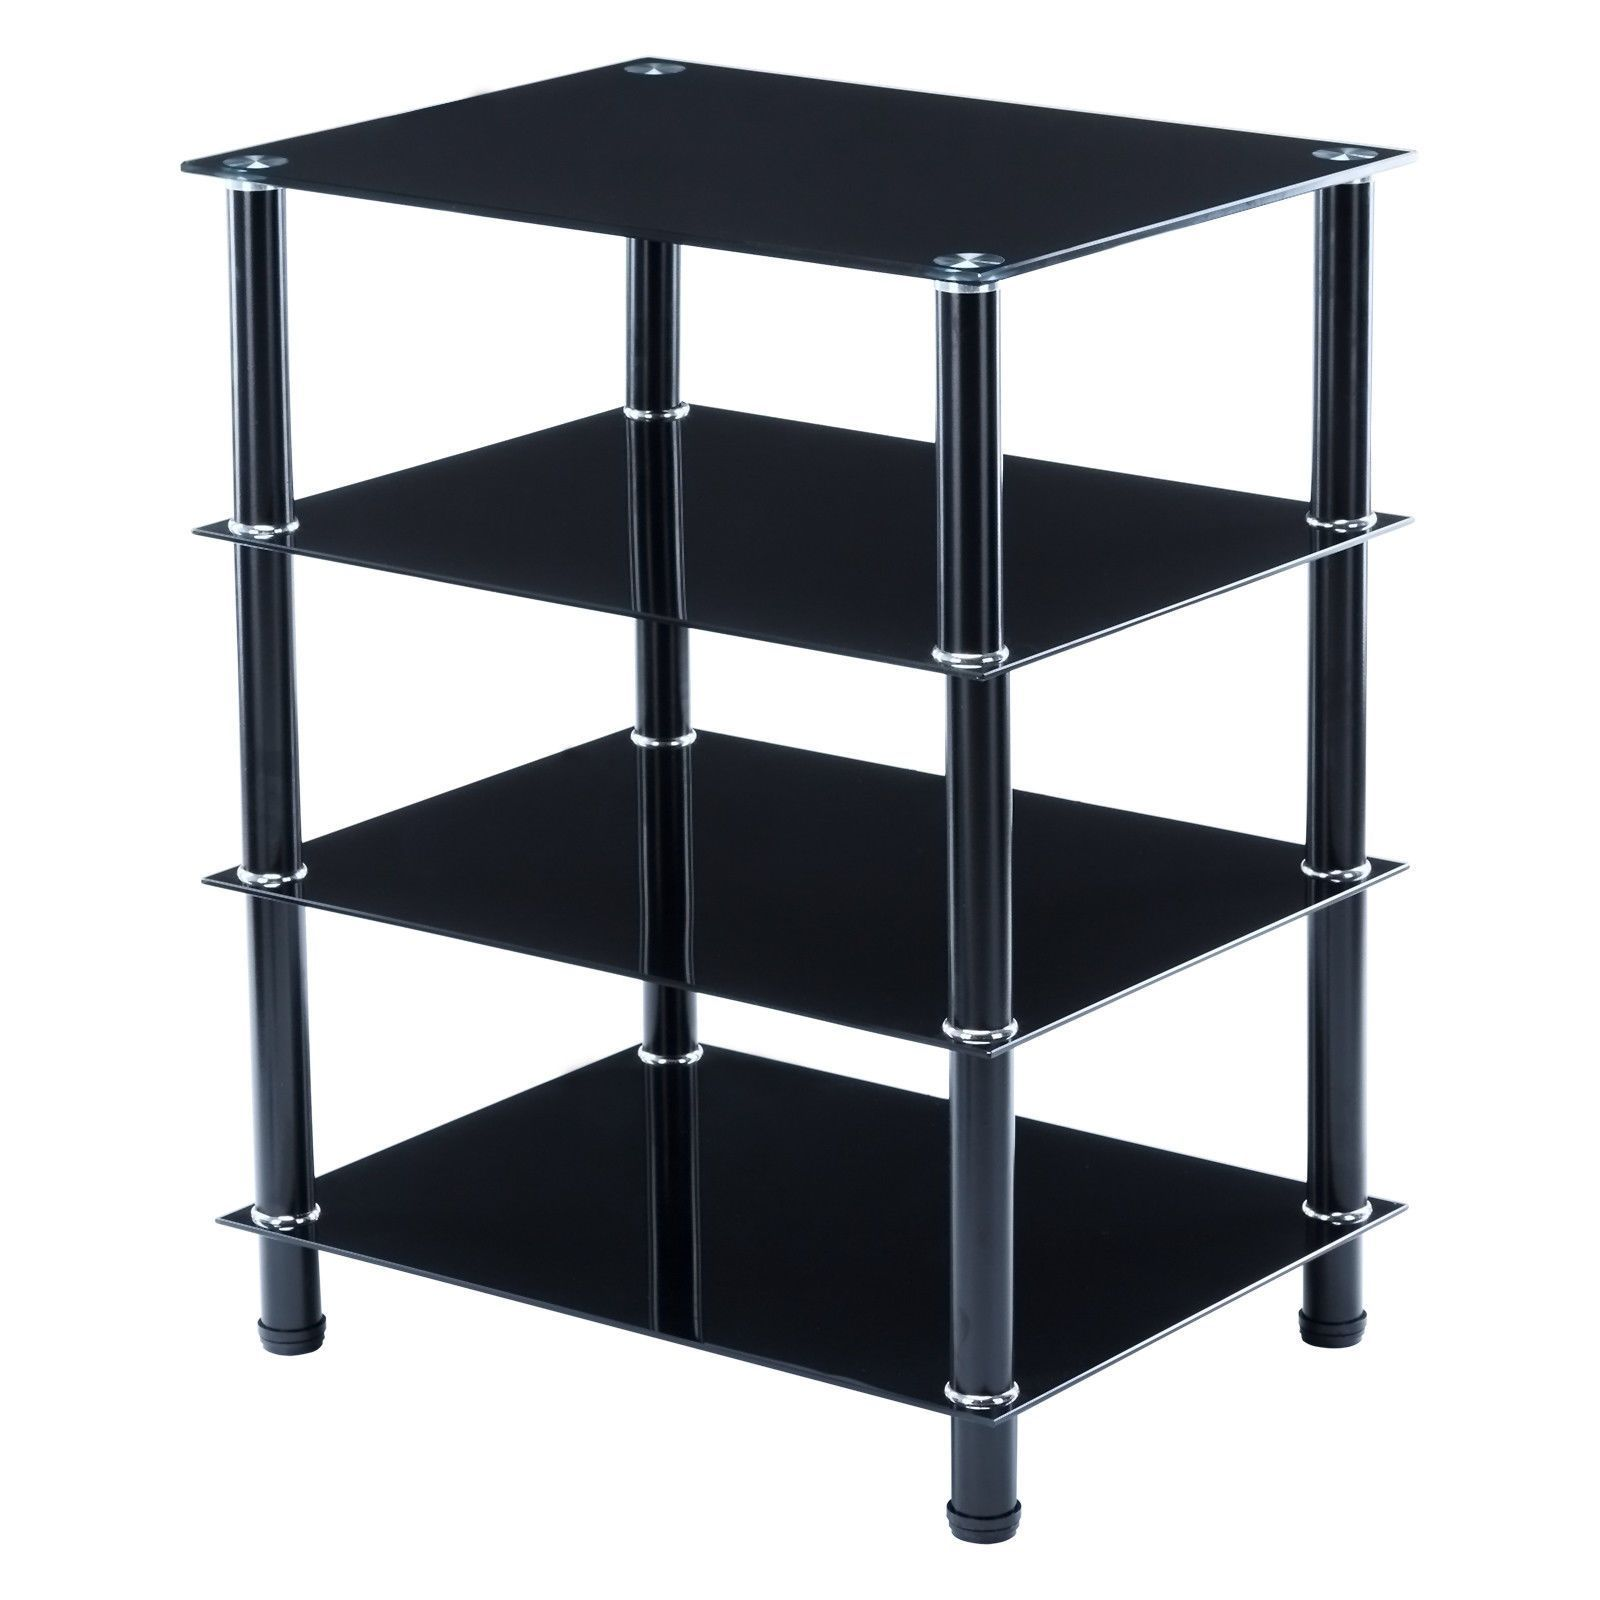 Glass console table with shelf bn black tempered glass tv stand shelves storage console table media